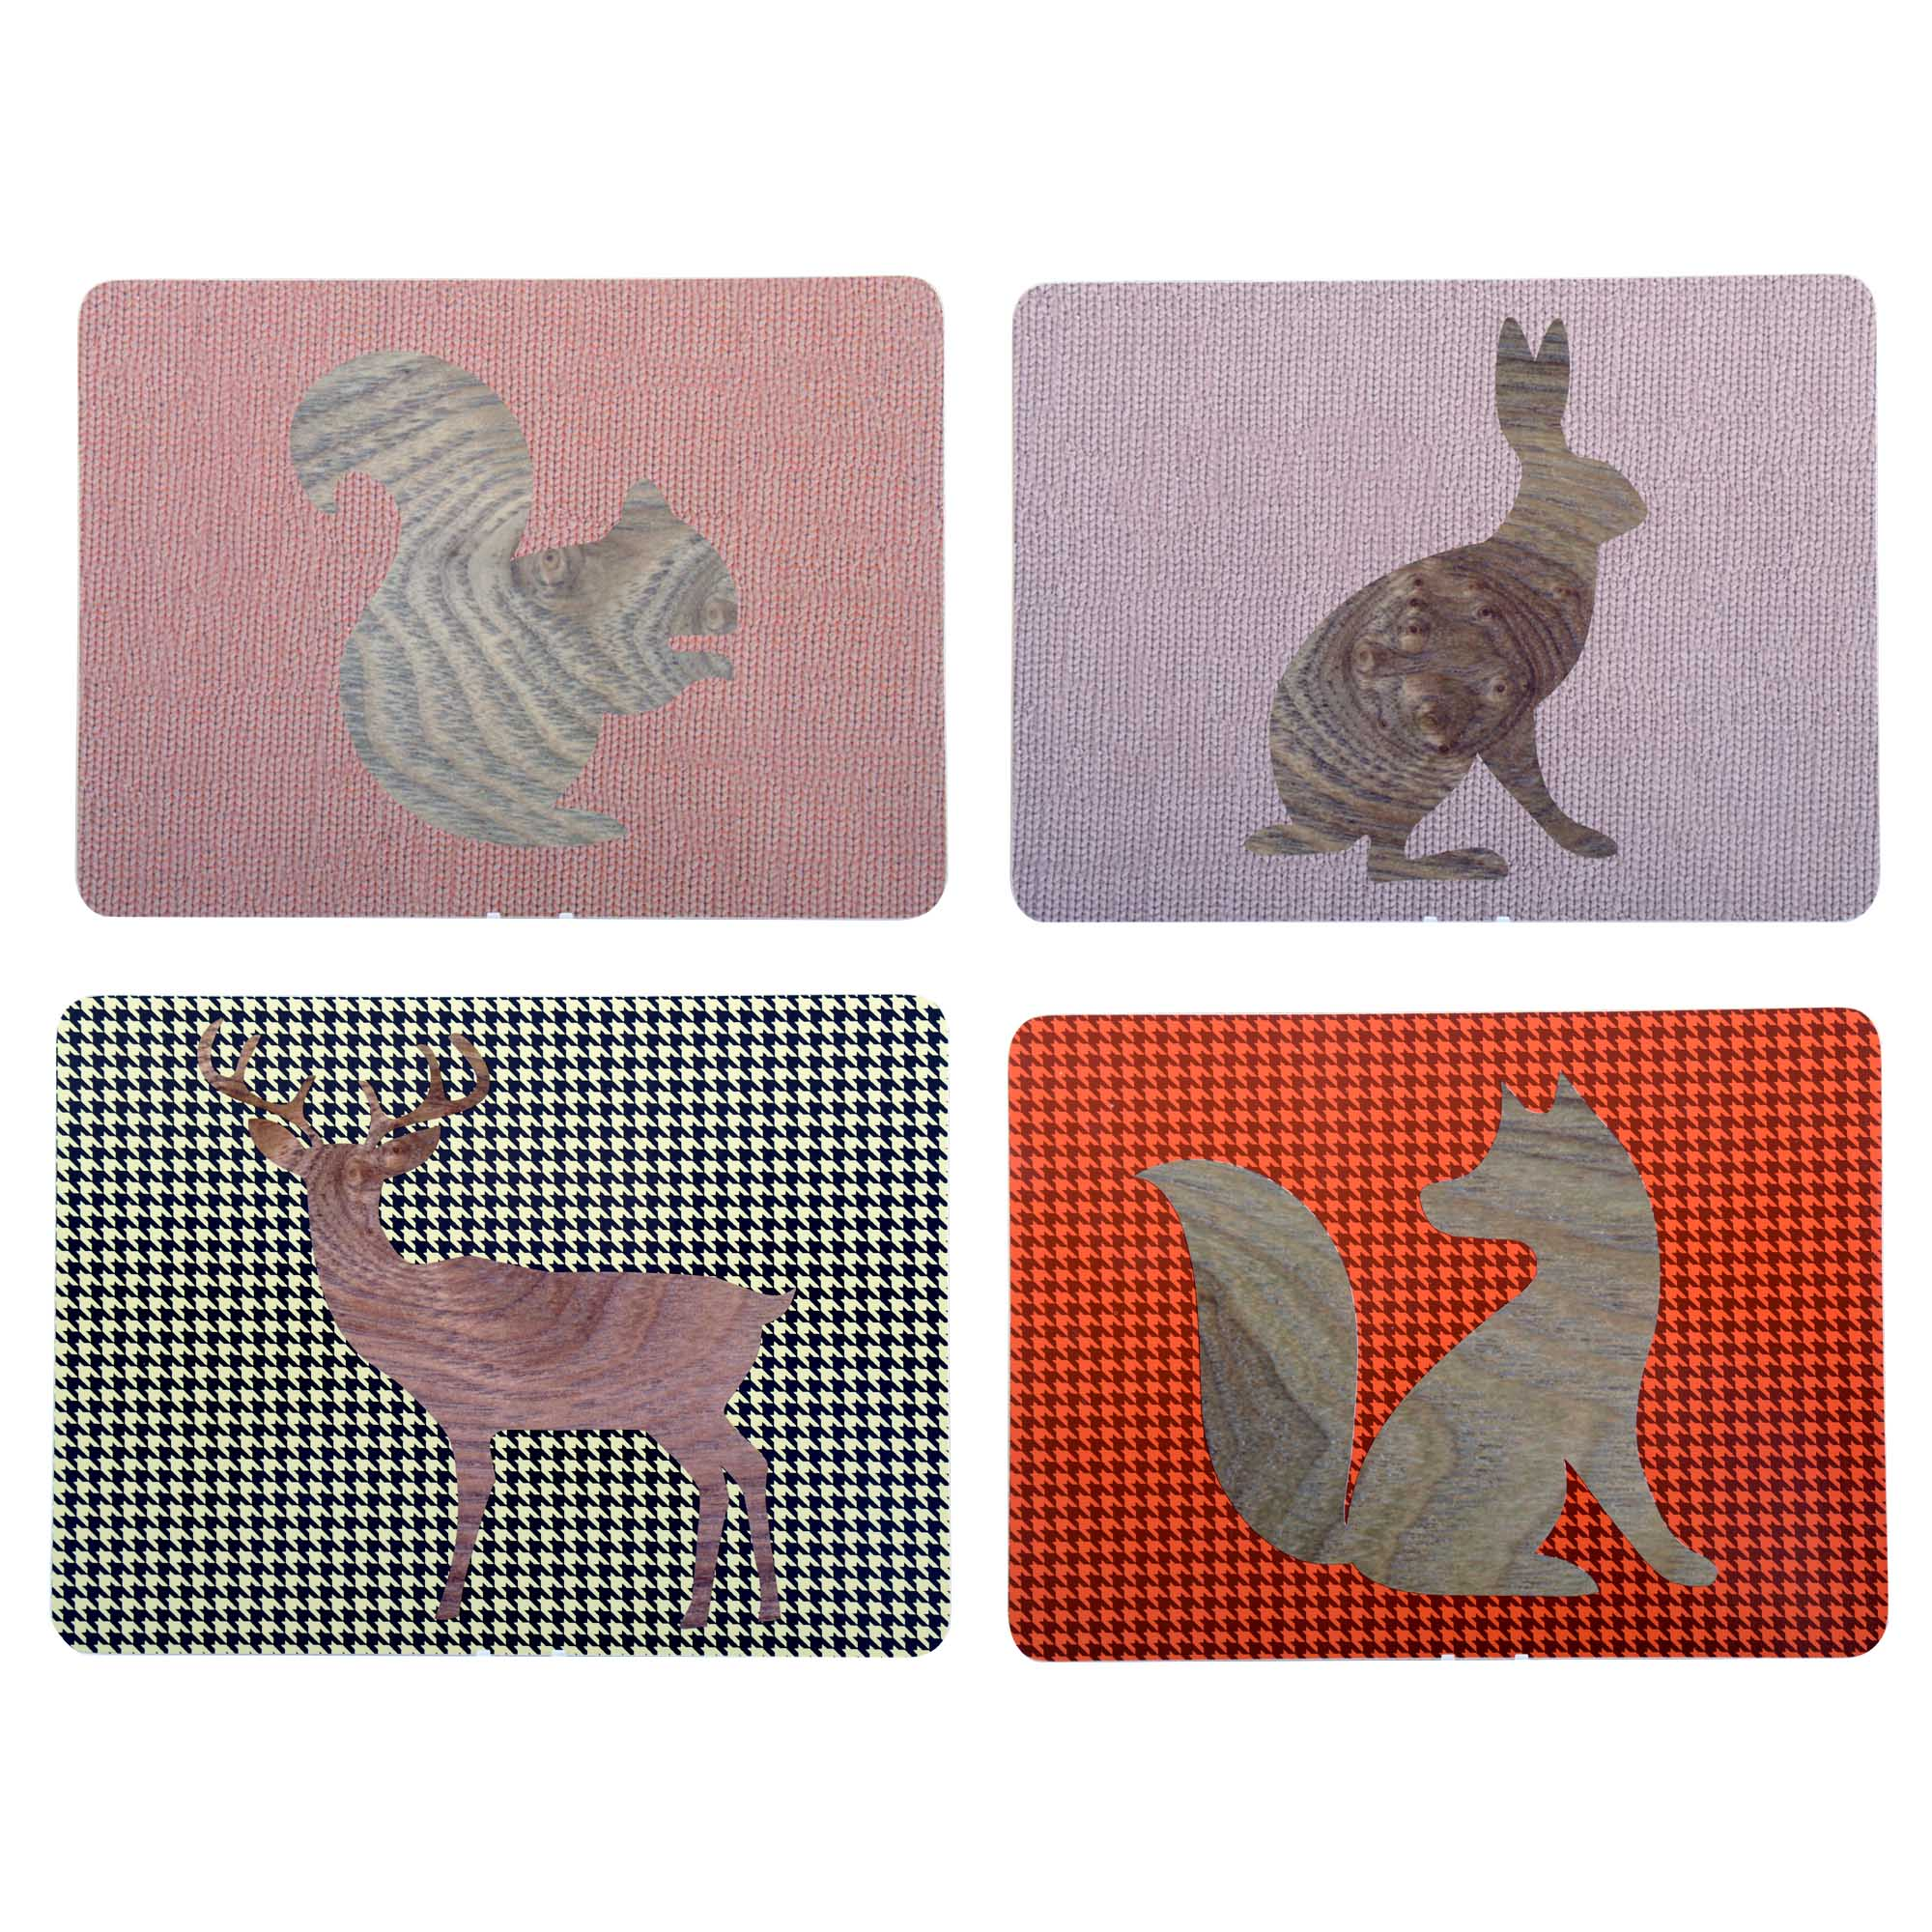 Knitted Animals Set of 4 Placemats